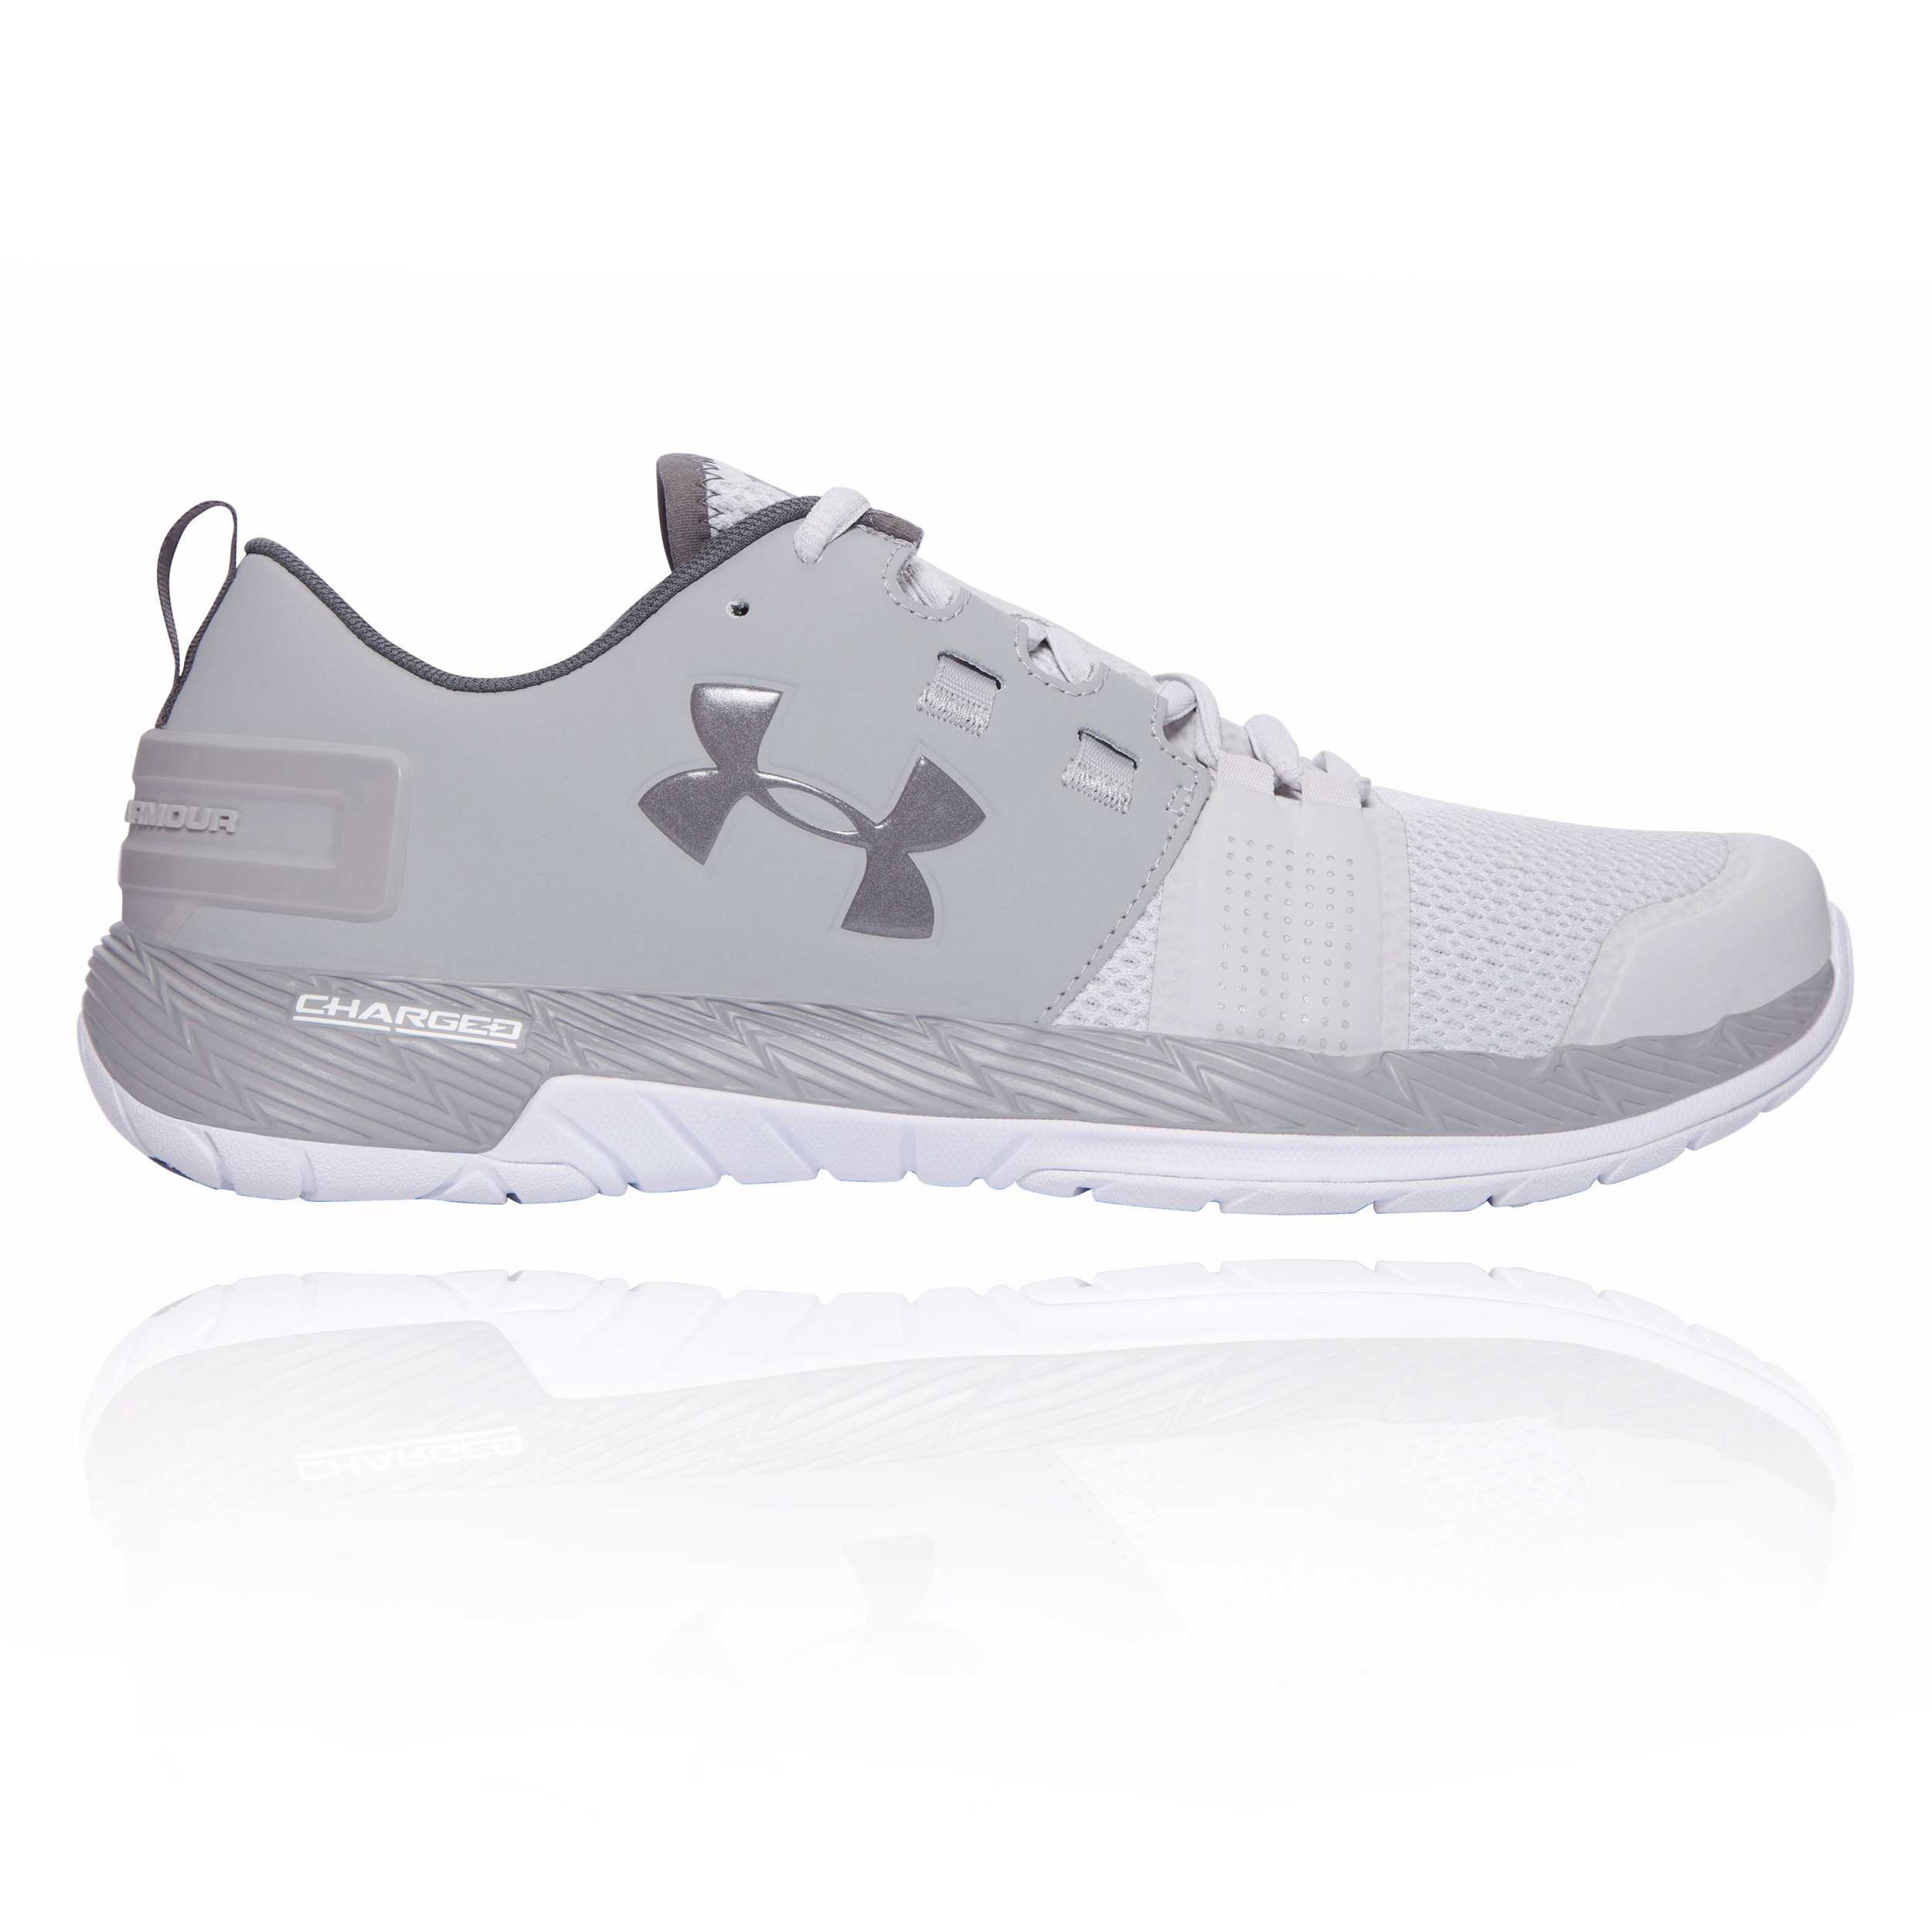 pretty nice 6b12a 1b82e Details about Under Armour Mens Commit Training Gym Fitness Shoes Grey  Sports Breathable